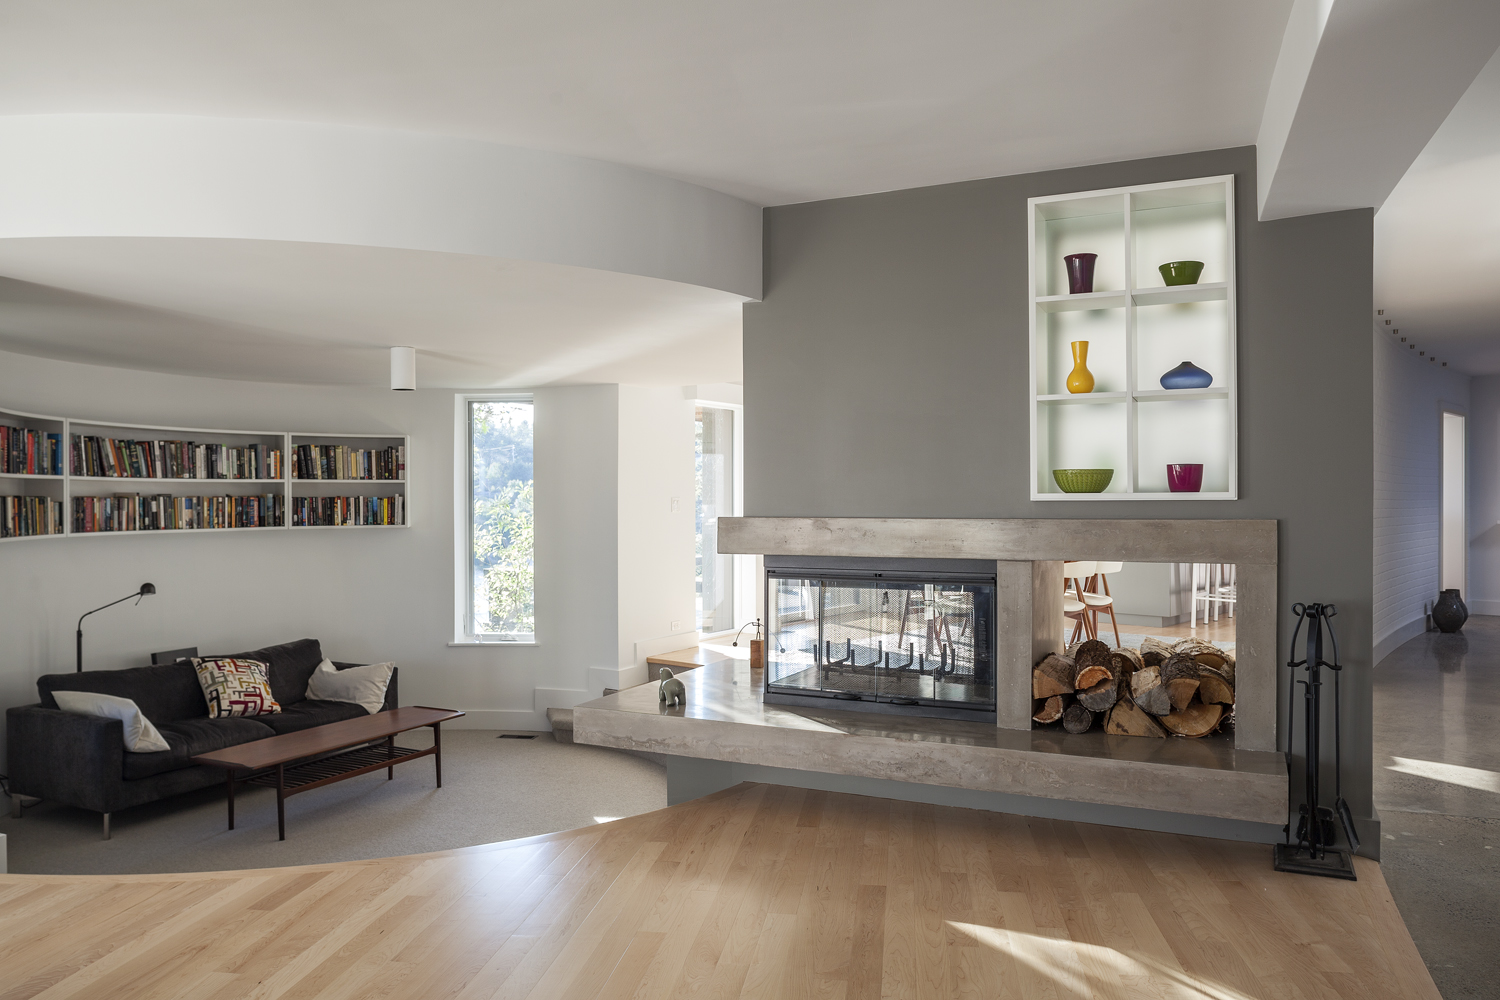 Recessed reading area with 3 sided concrete fireplace and backlit shelving and wood storage